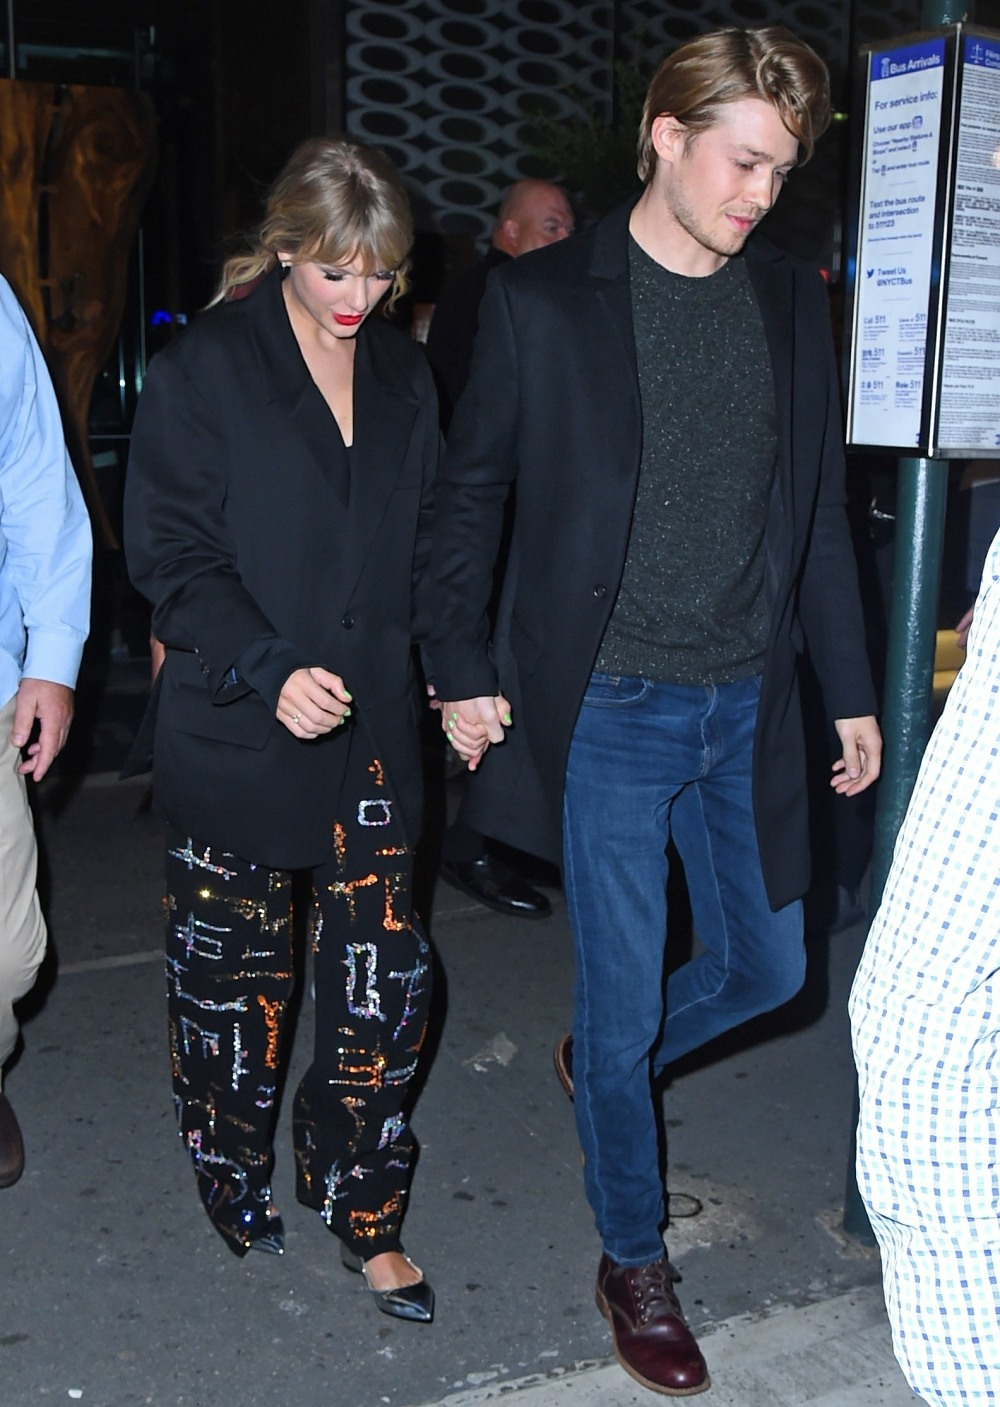 Taylor Swift and Joe Alwyn seen leaving the SNL After Party at Zuma